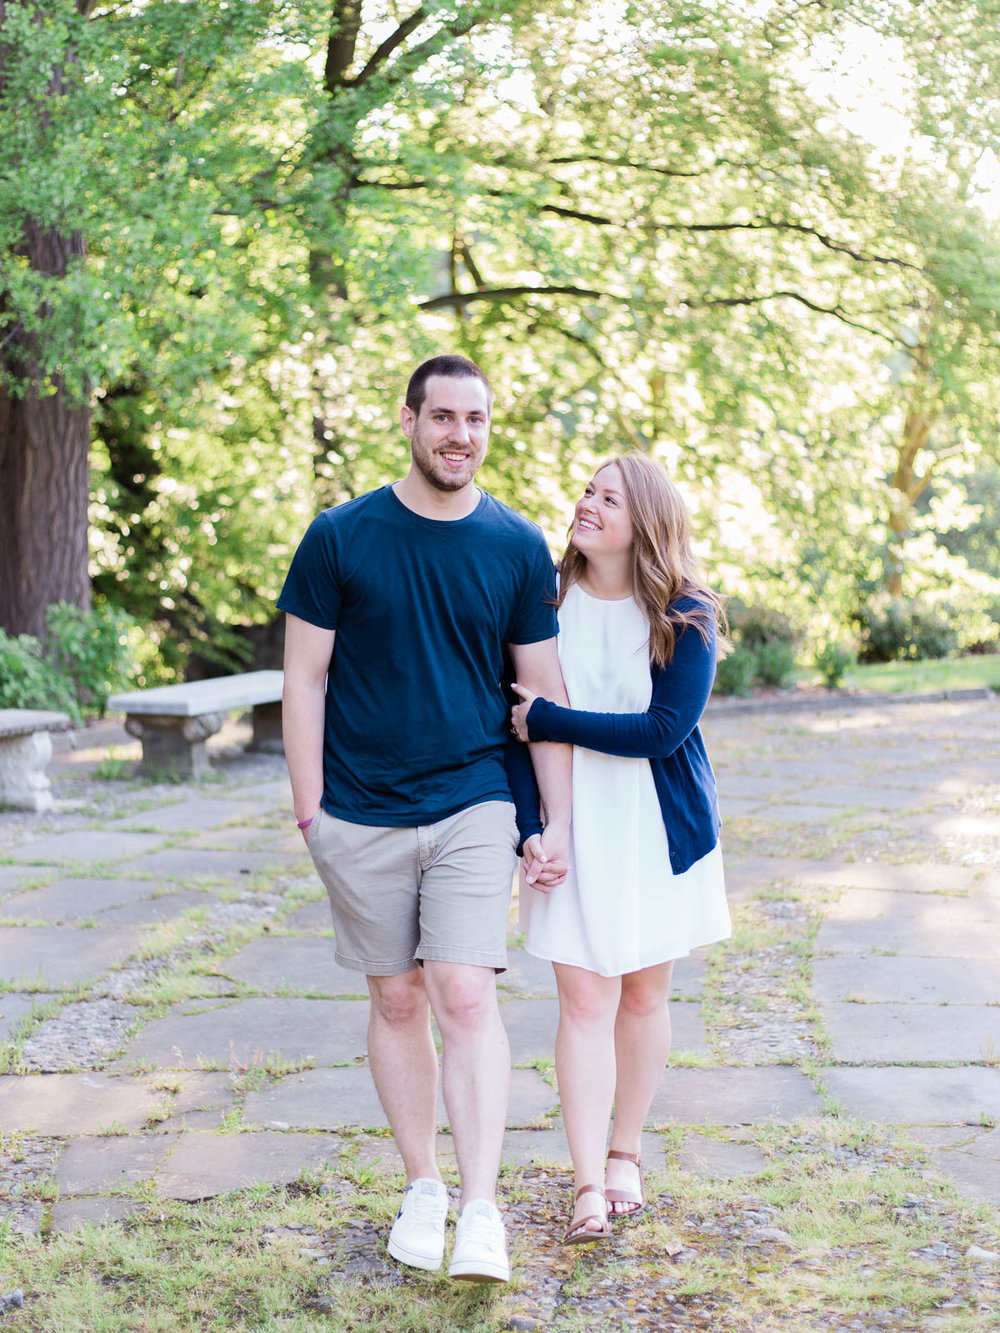 matt-erickson-photography-cleveland-cultural-gardens-engagement-photos-34.jpg